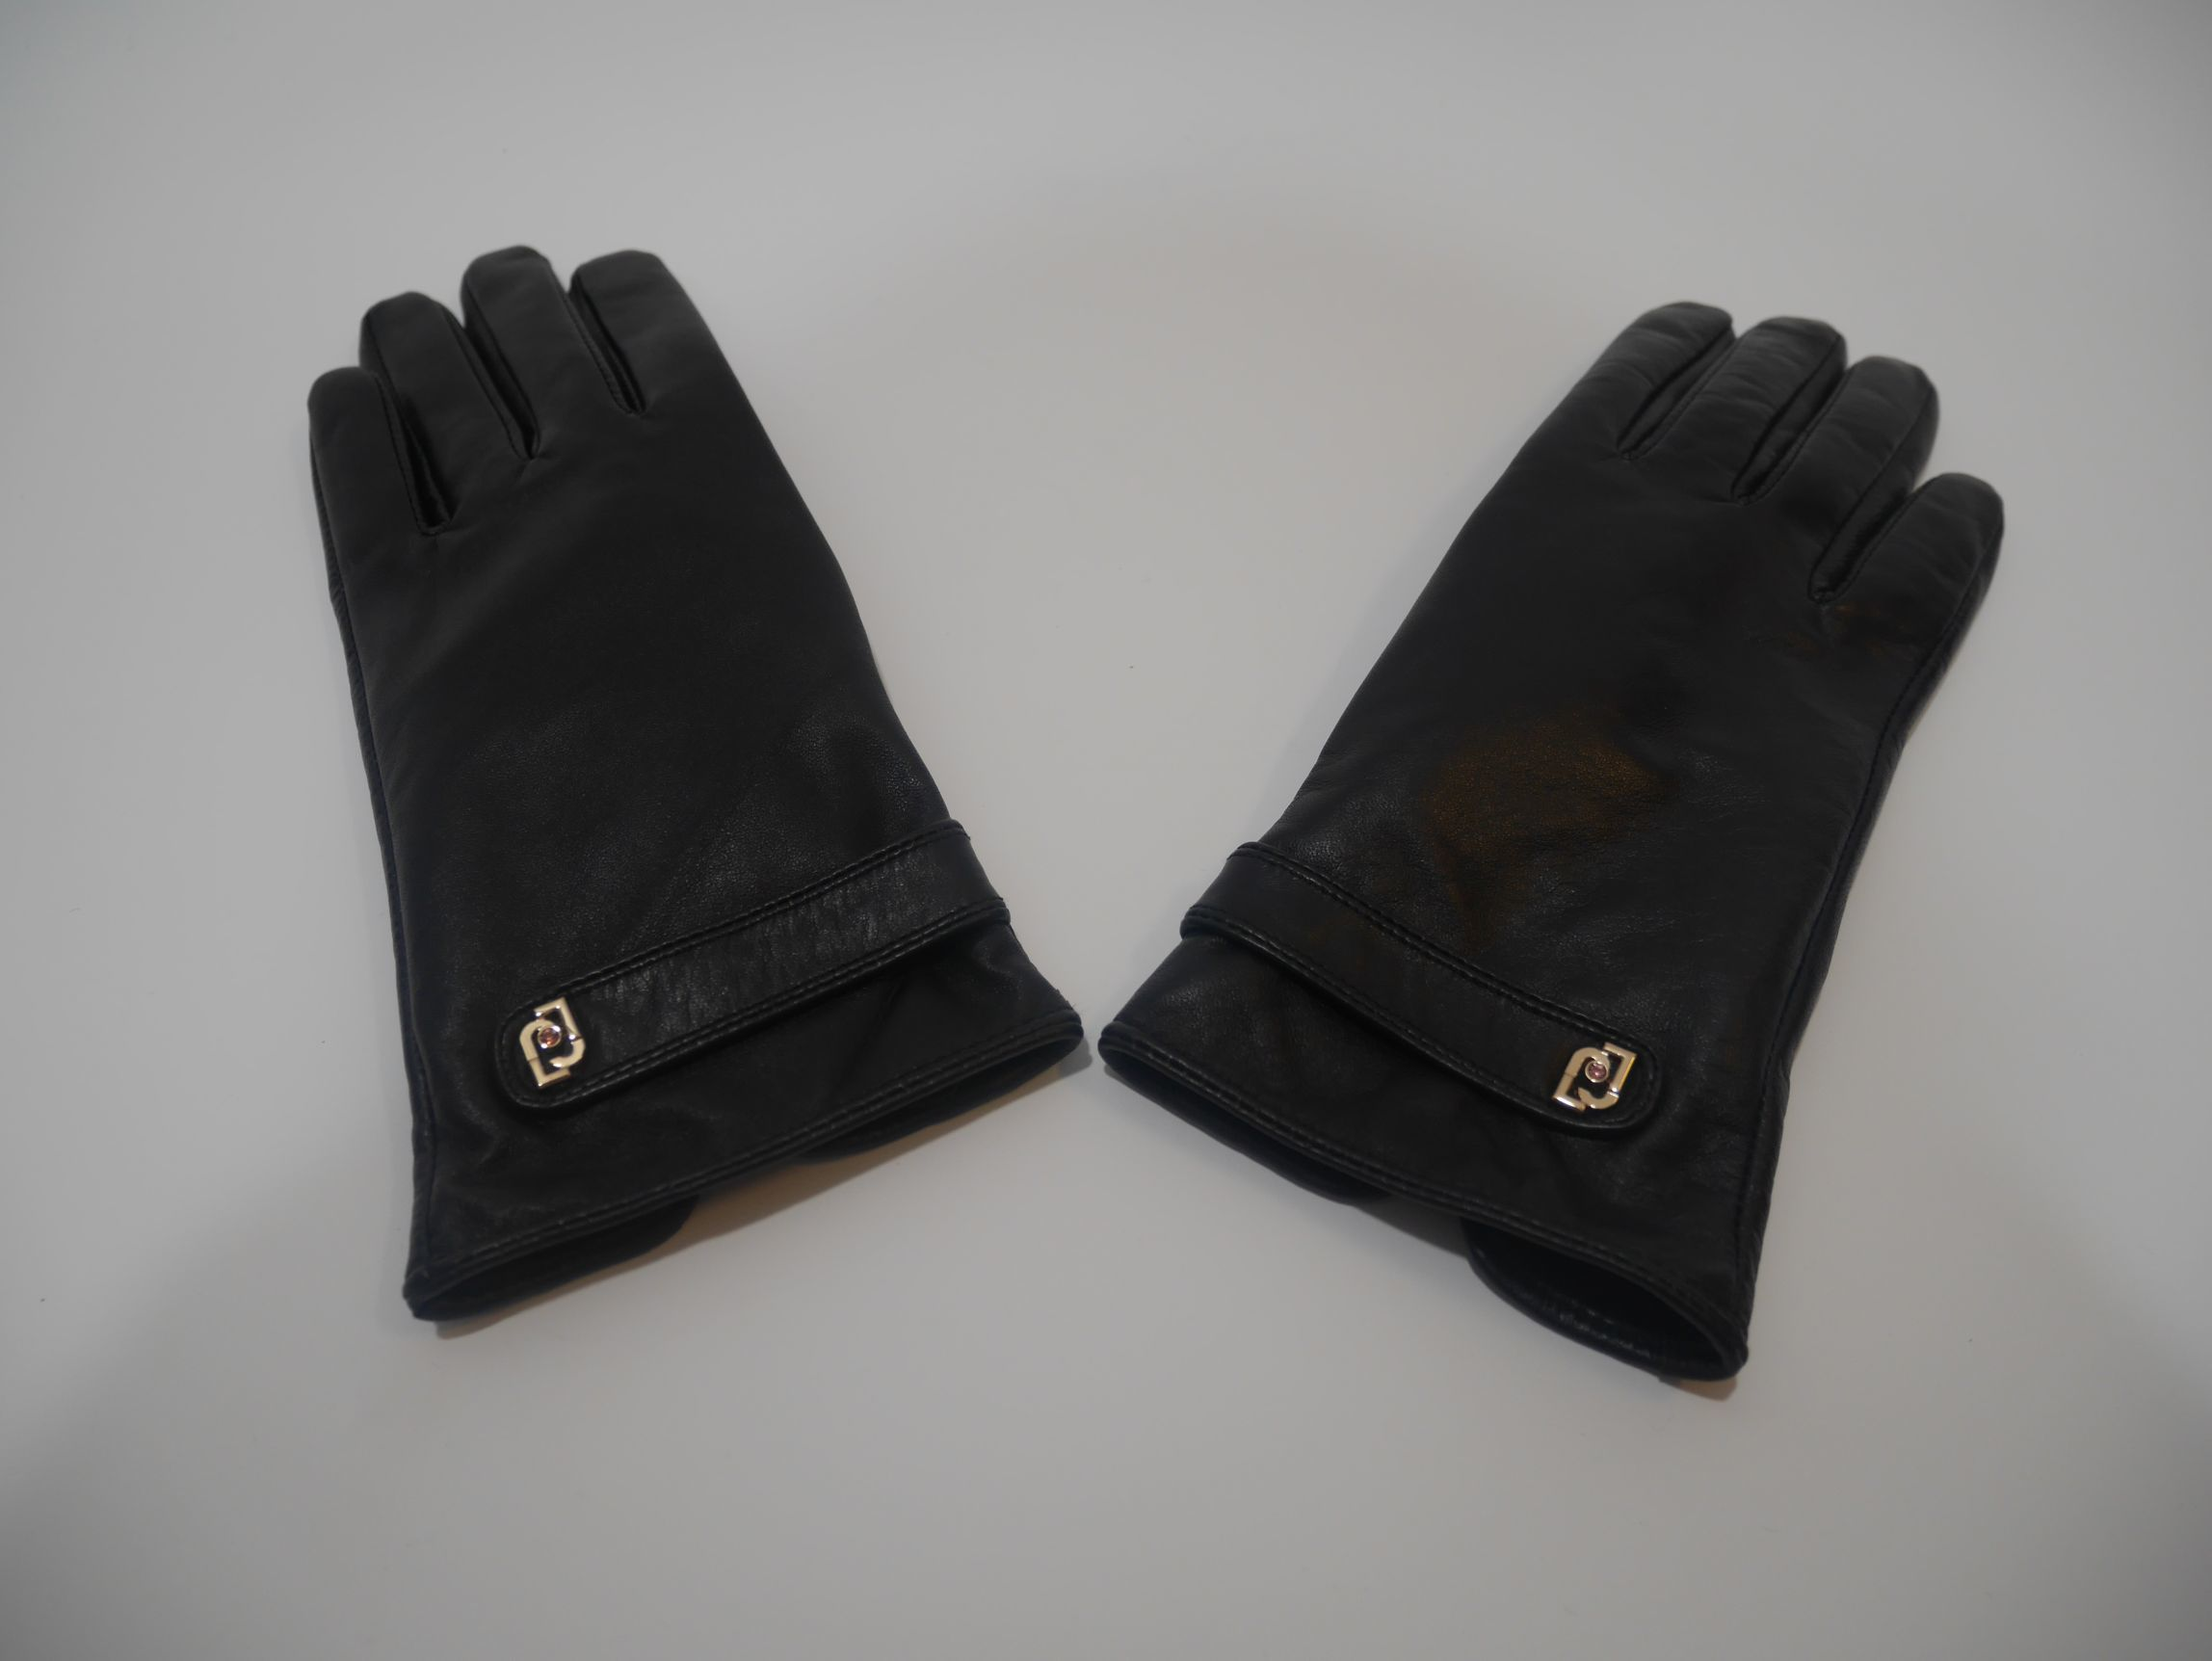 369096 P0016 22222 LEATHER GLOVES 2